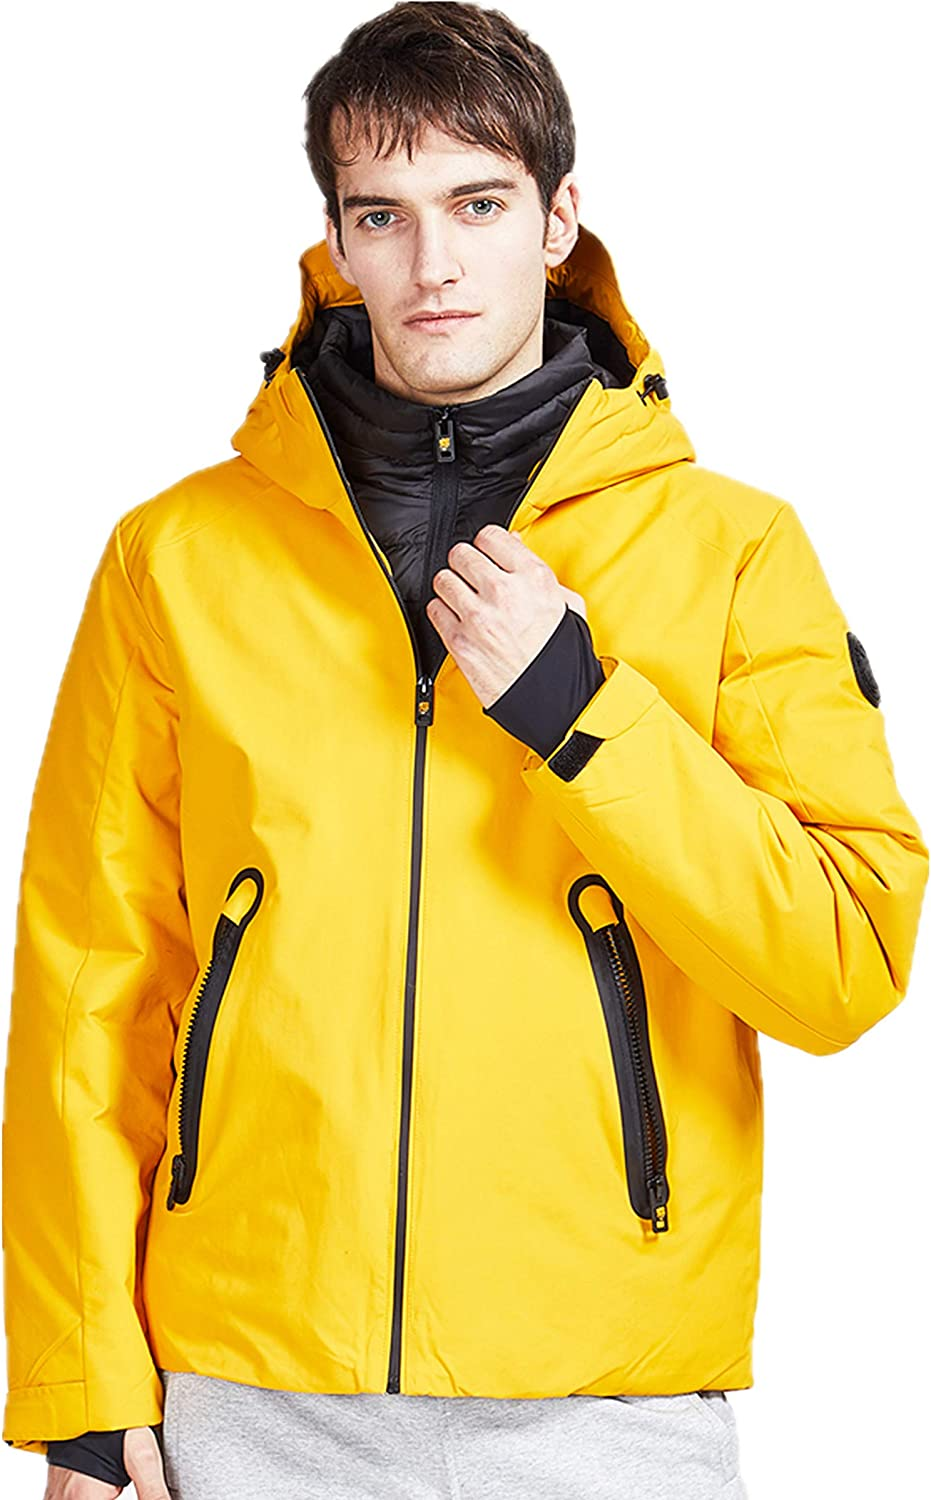 TIGER FORCE Men Winter Jackets Jacket Quilted Rain Weekly update W Max 81% OFF Coat